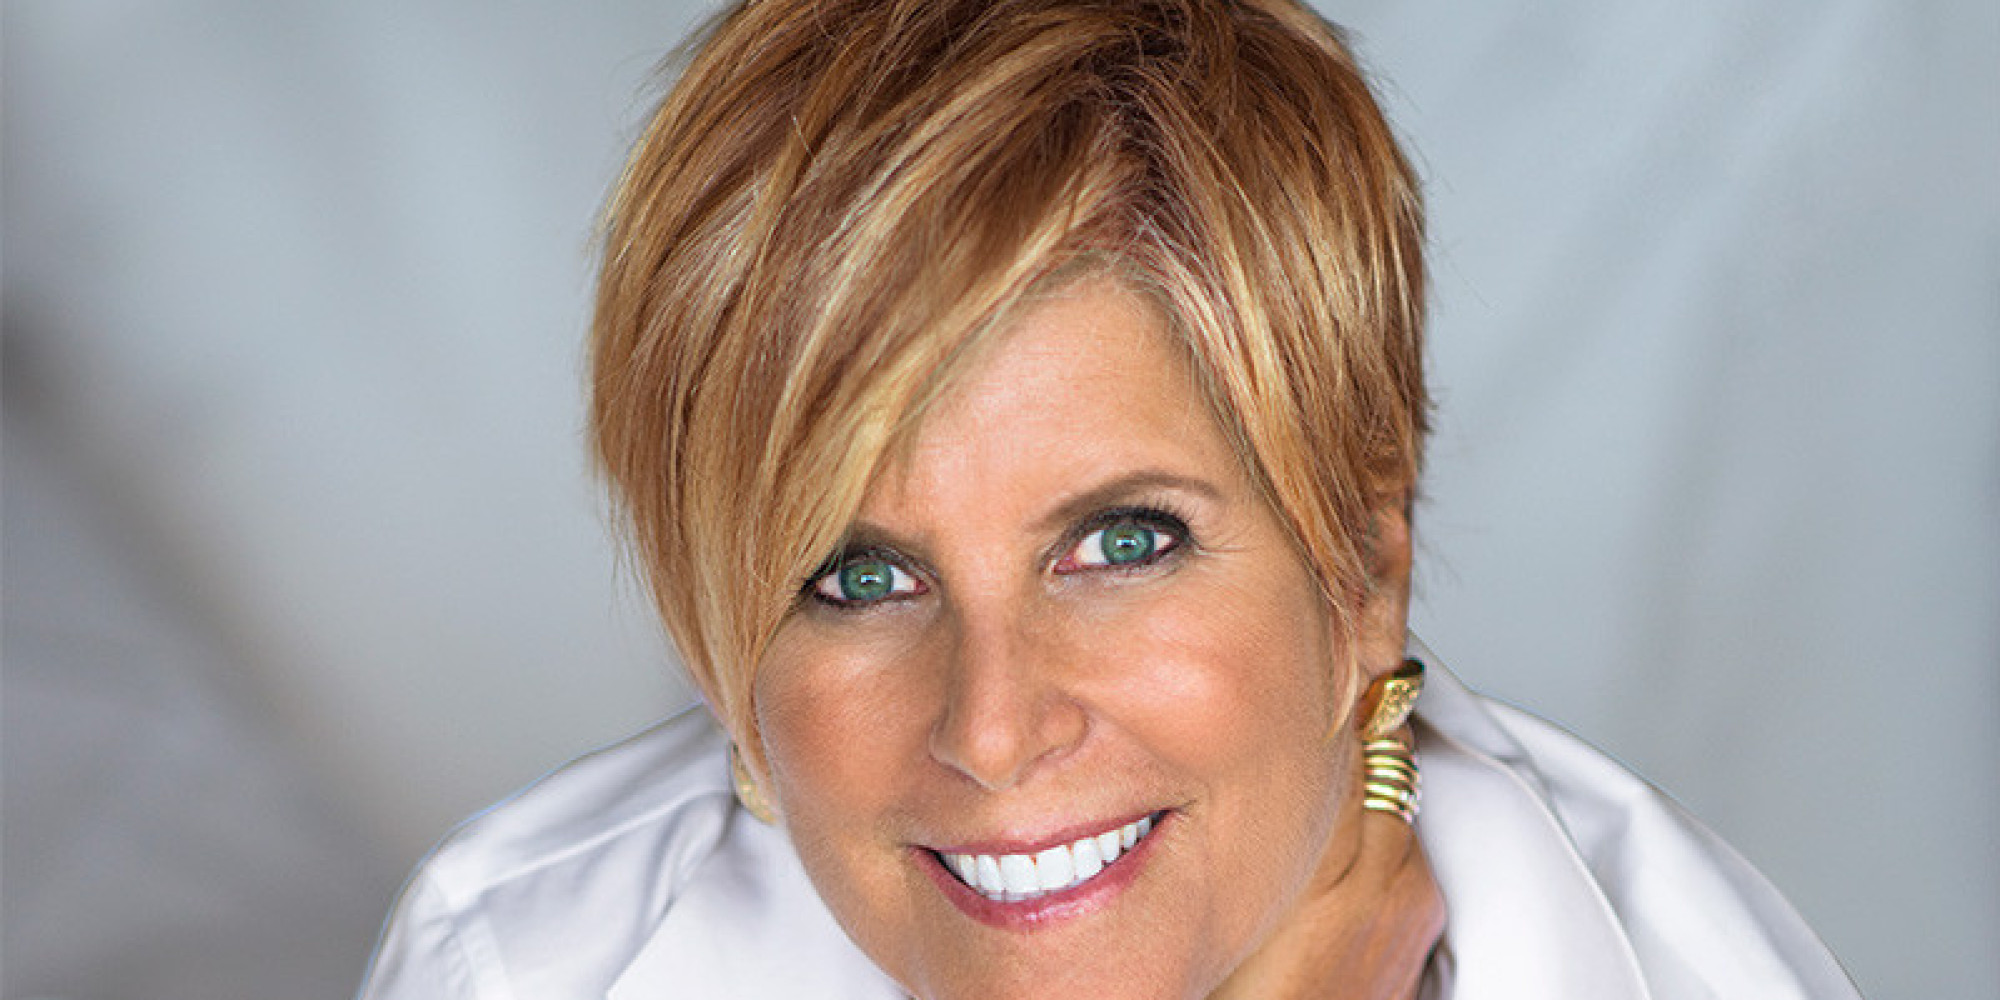 Suze Orman's Insurance Kit: Evaluate Your Personal Pictures of suze orman